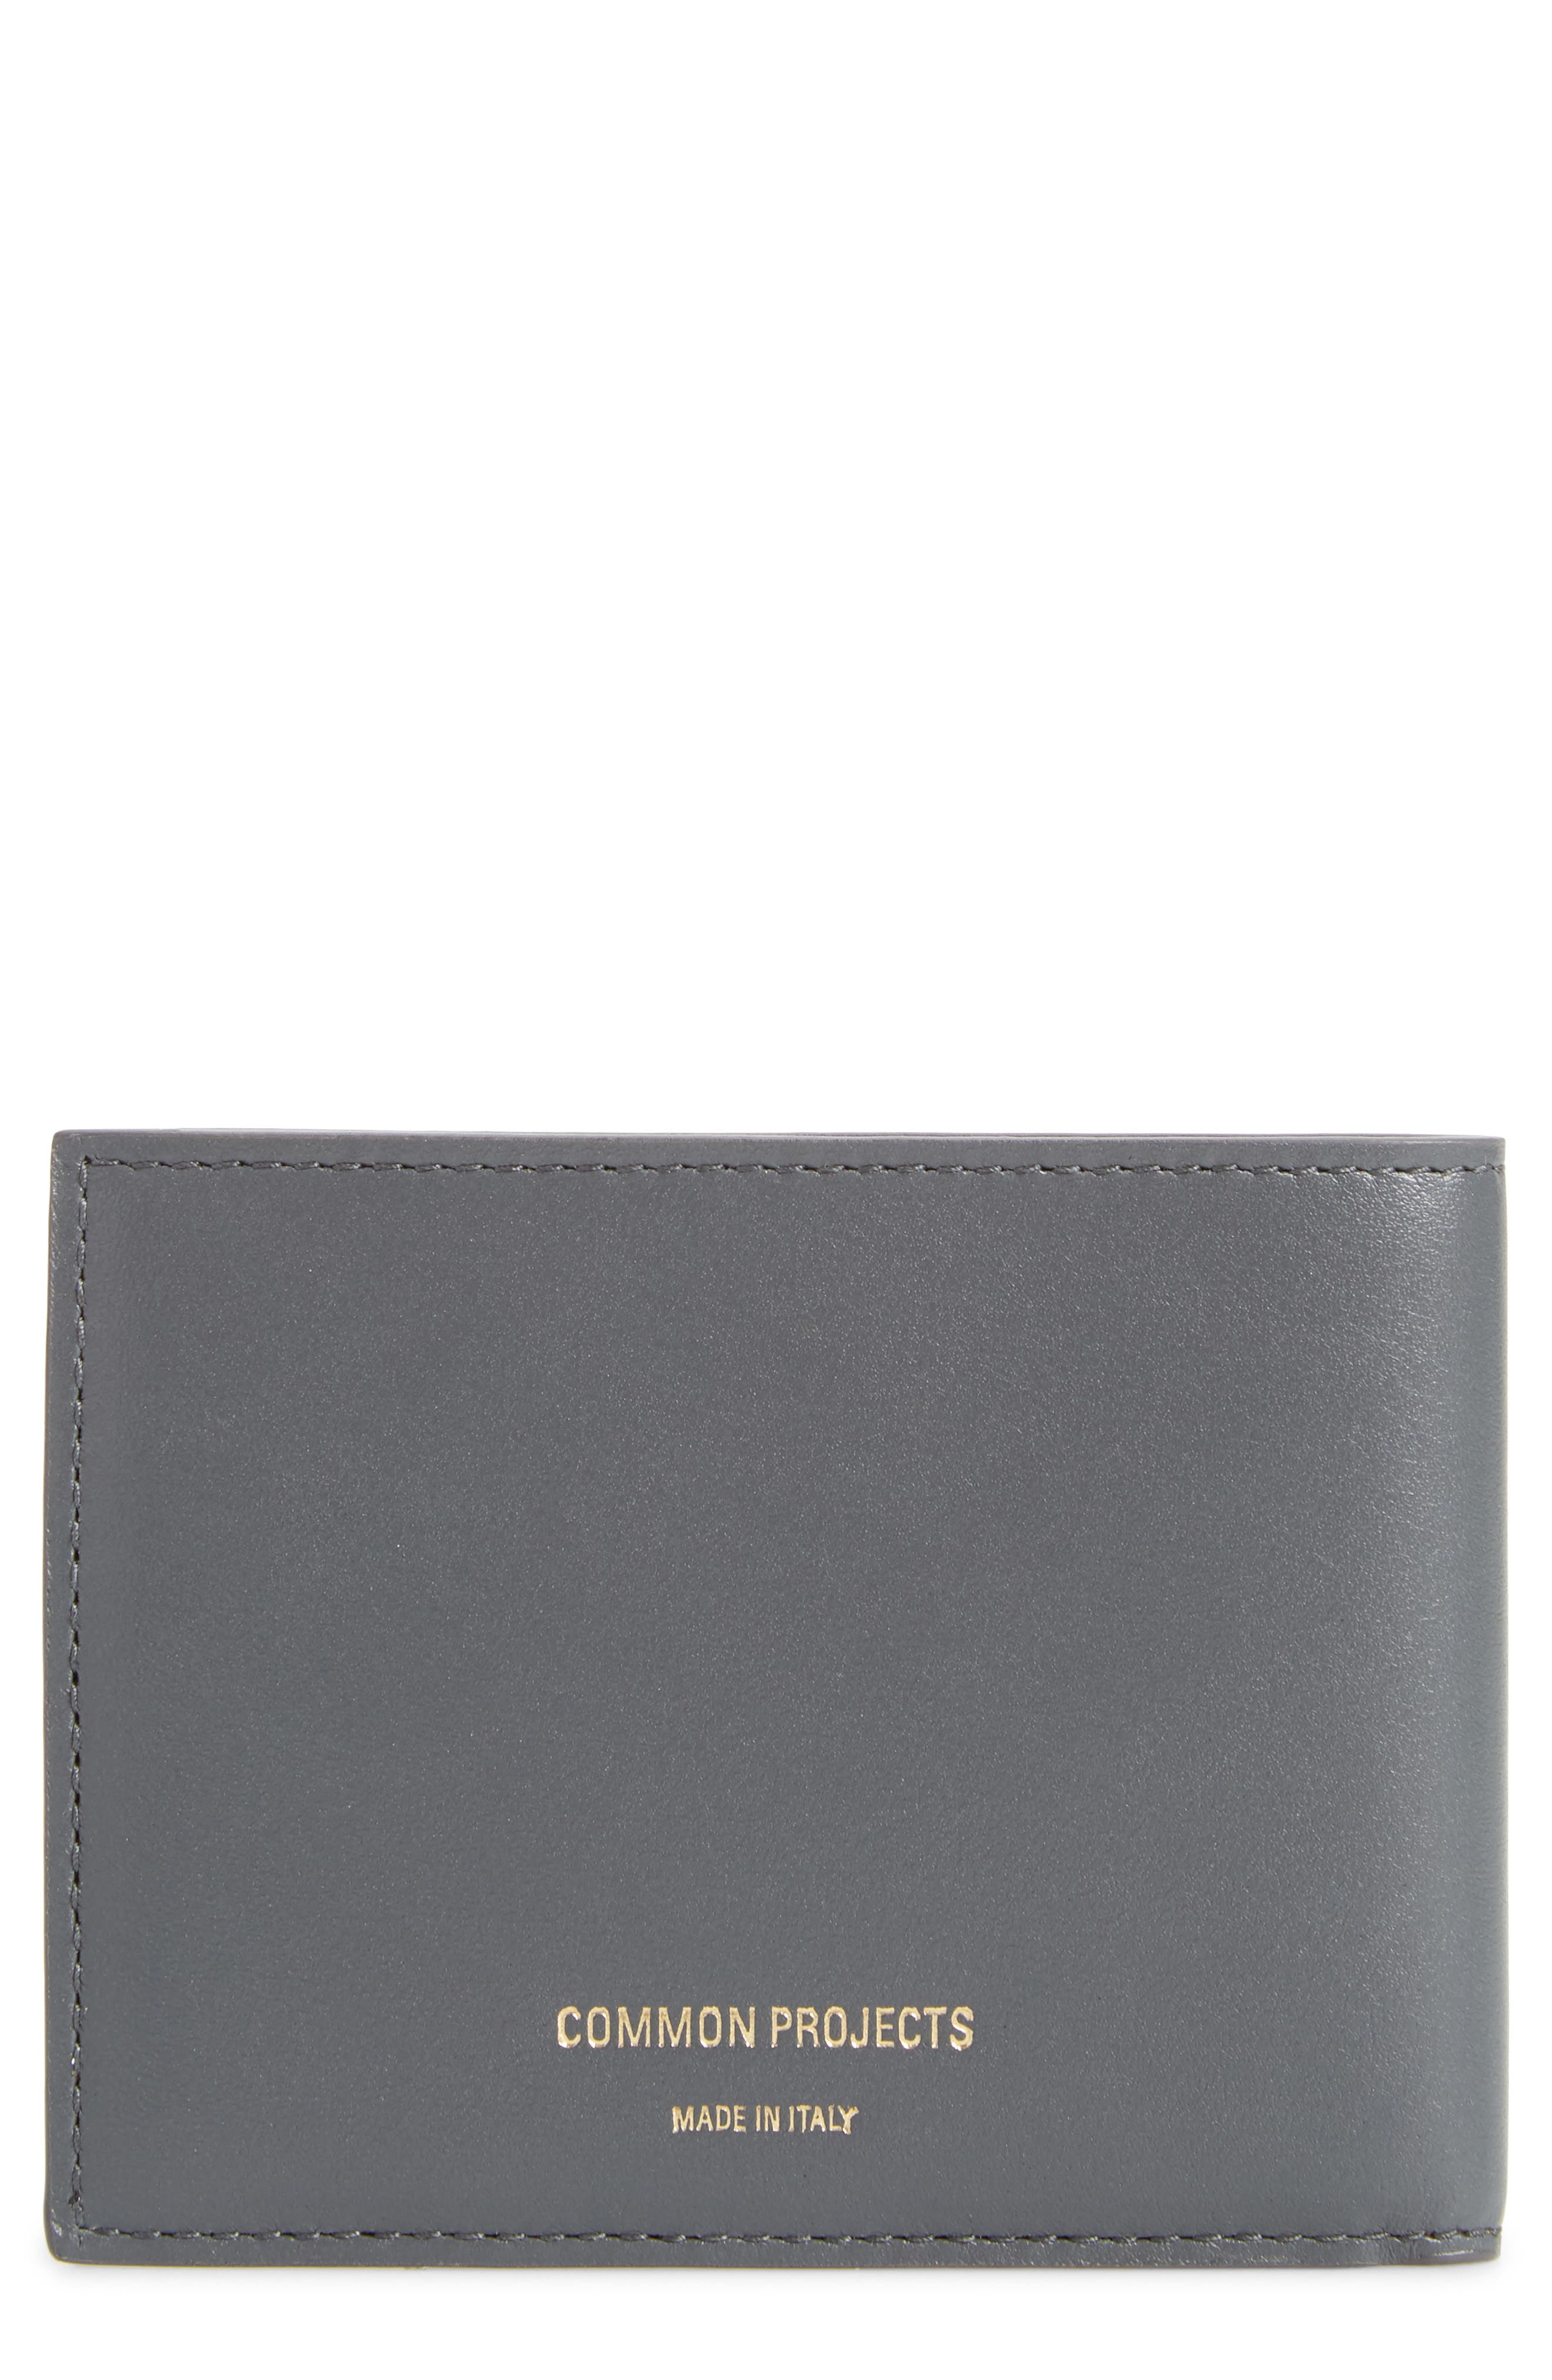 Leather Wallet,                         Main,                         color, BLUE/ GREY